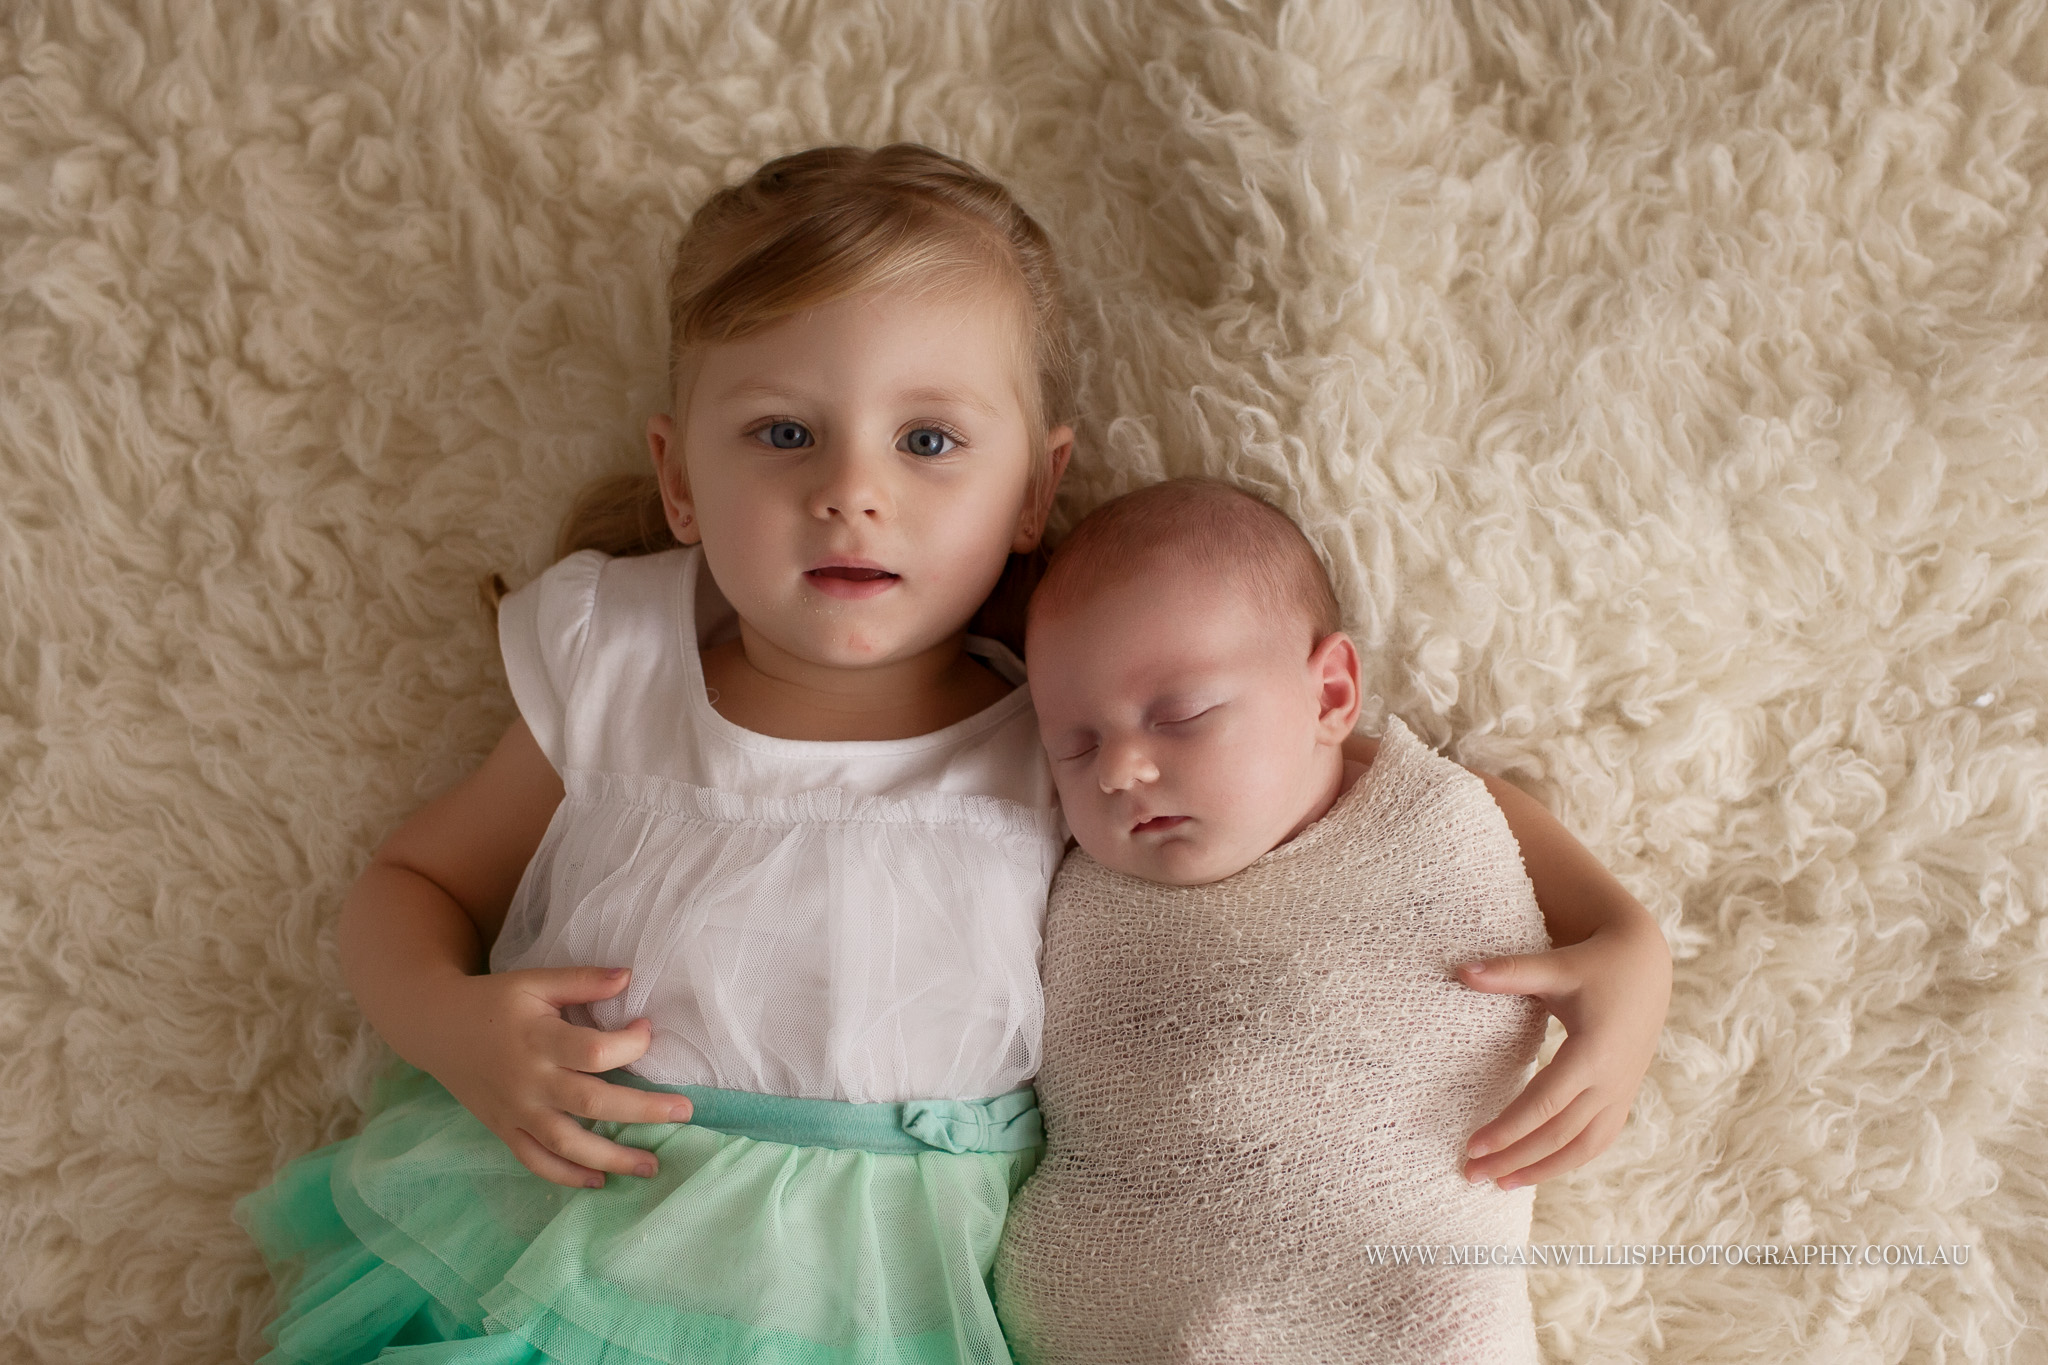 Kirsty Lea Photography Workshop – Newborn Posing – March 2014